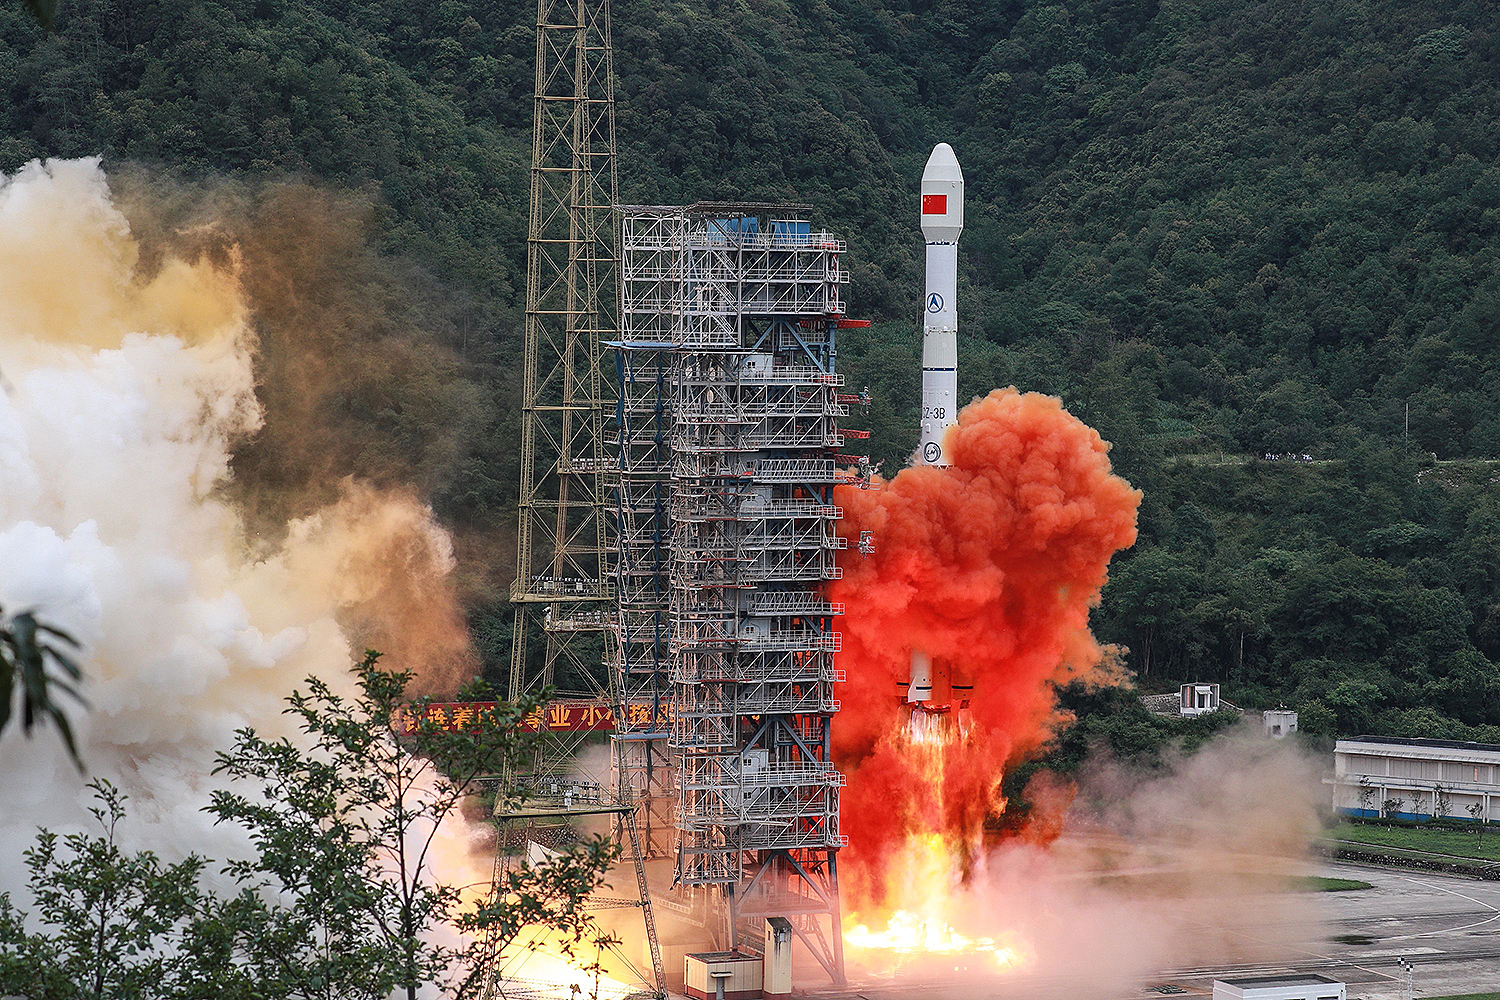 A Long March 3B rocket carrying the Beidou-3GEO3 satellite lifts off from the Xichang Satellite Launch Center in China's southwestern Sichuan province on June 23. STR/AFP via Getty Images